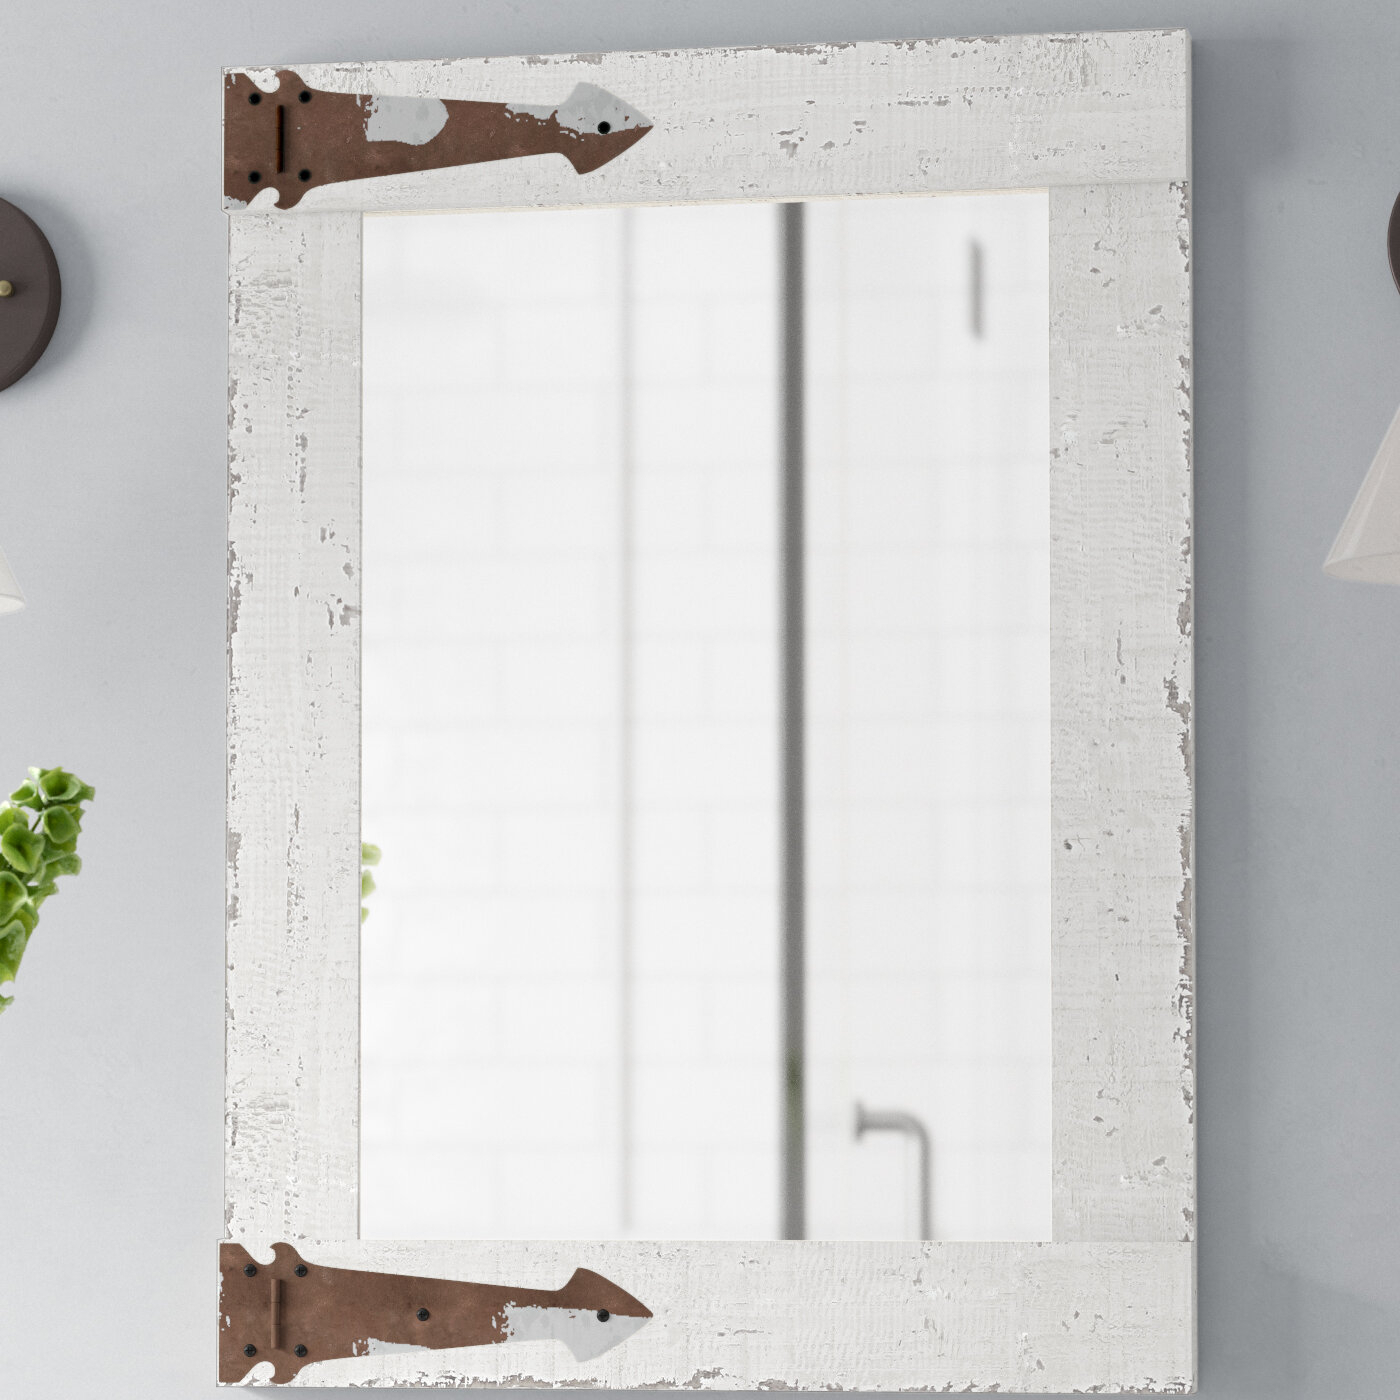 Kist Farmhouse Wall Mirror & Reviews | Birch Lane With Epinal Shabby Elegance Wall Mirrors (View 17 of 30)